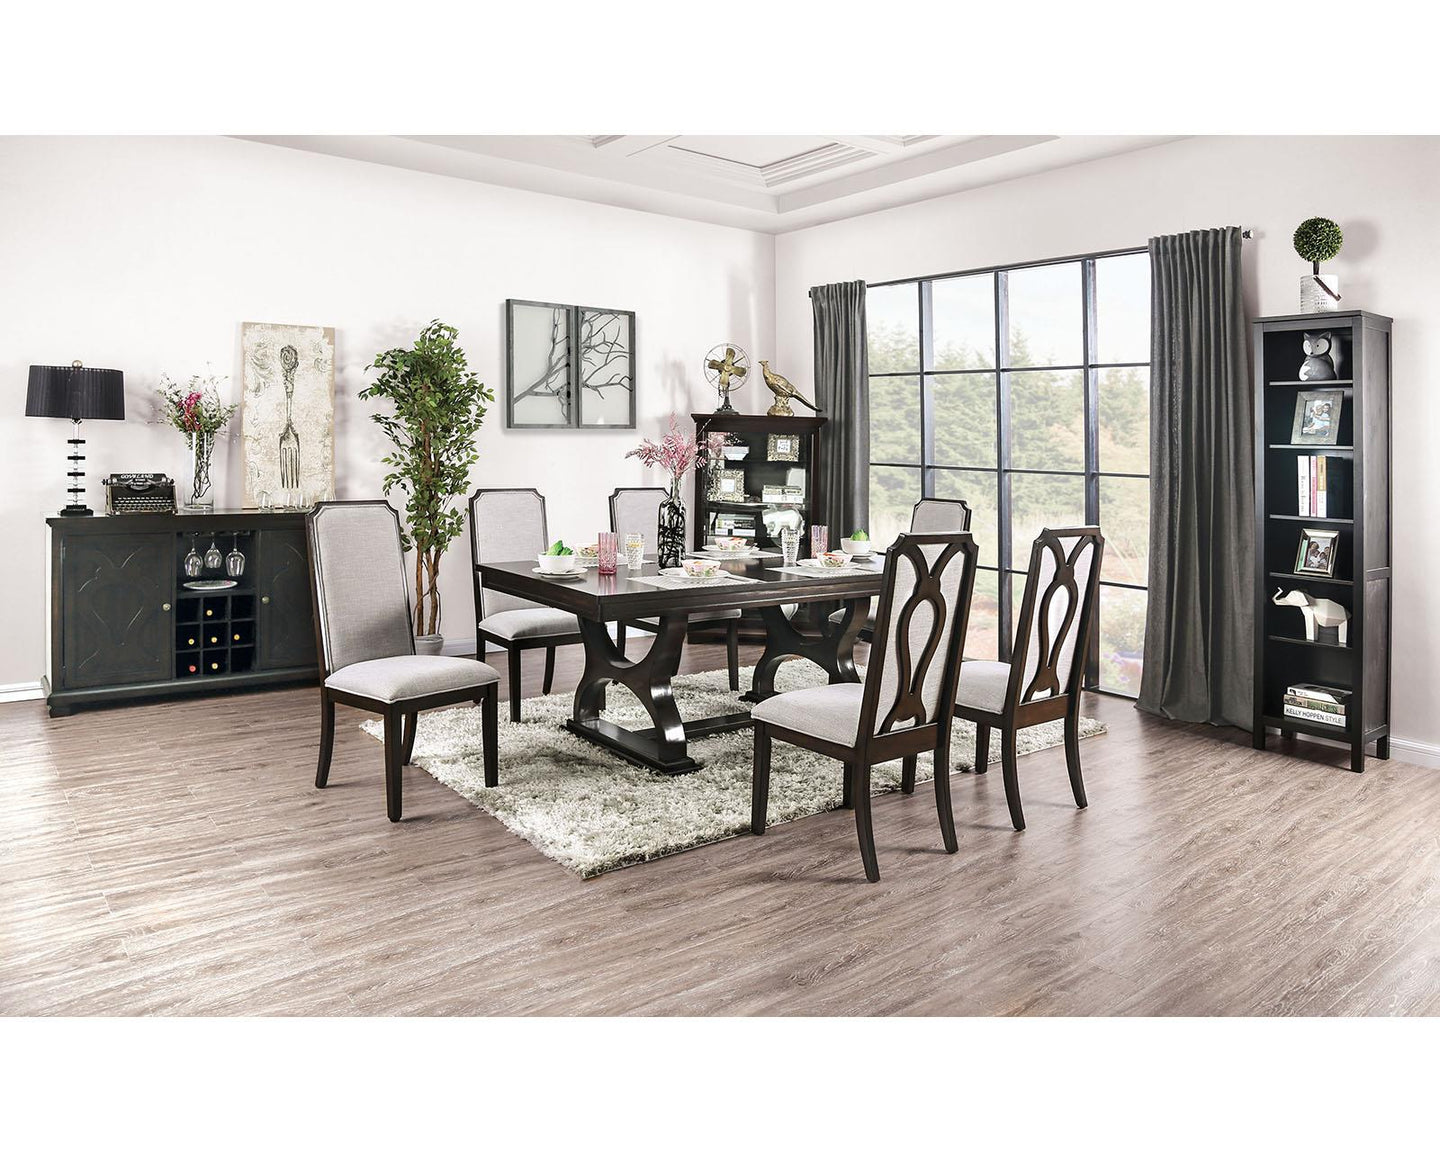 Gillam Espresso 7 Pc Dining Set